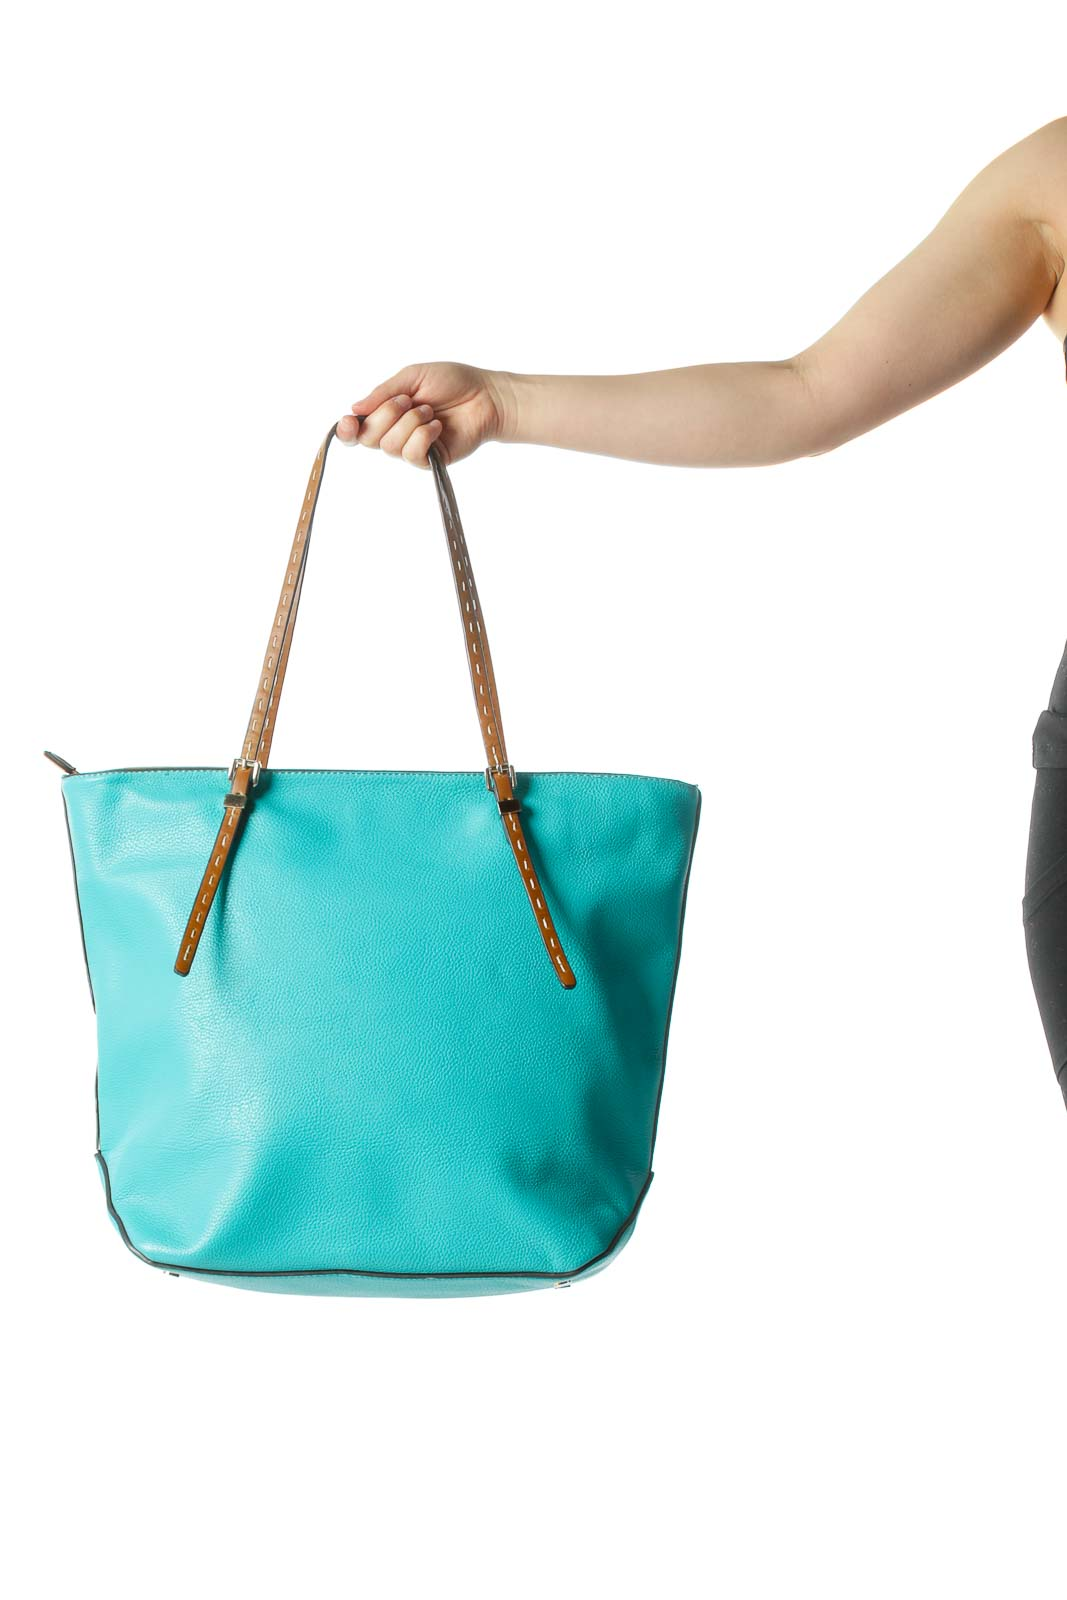 Turquoise Tote w/ Brown Straps